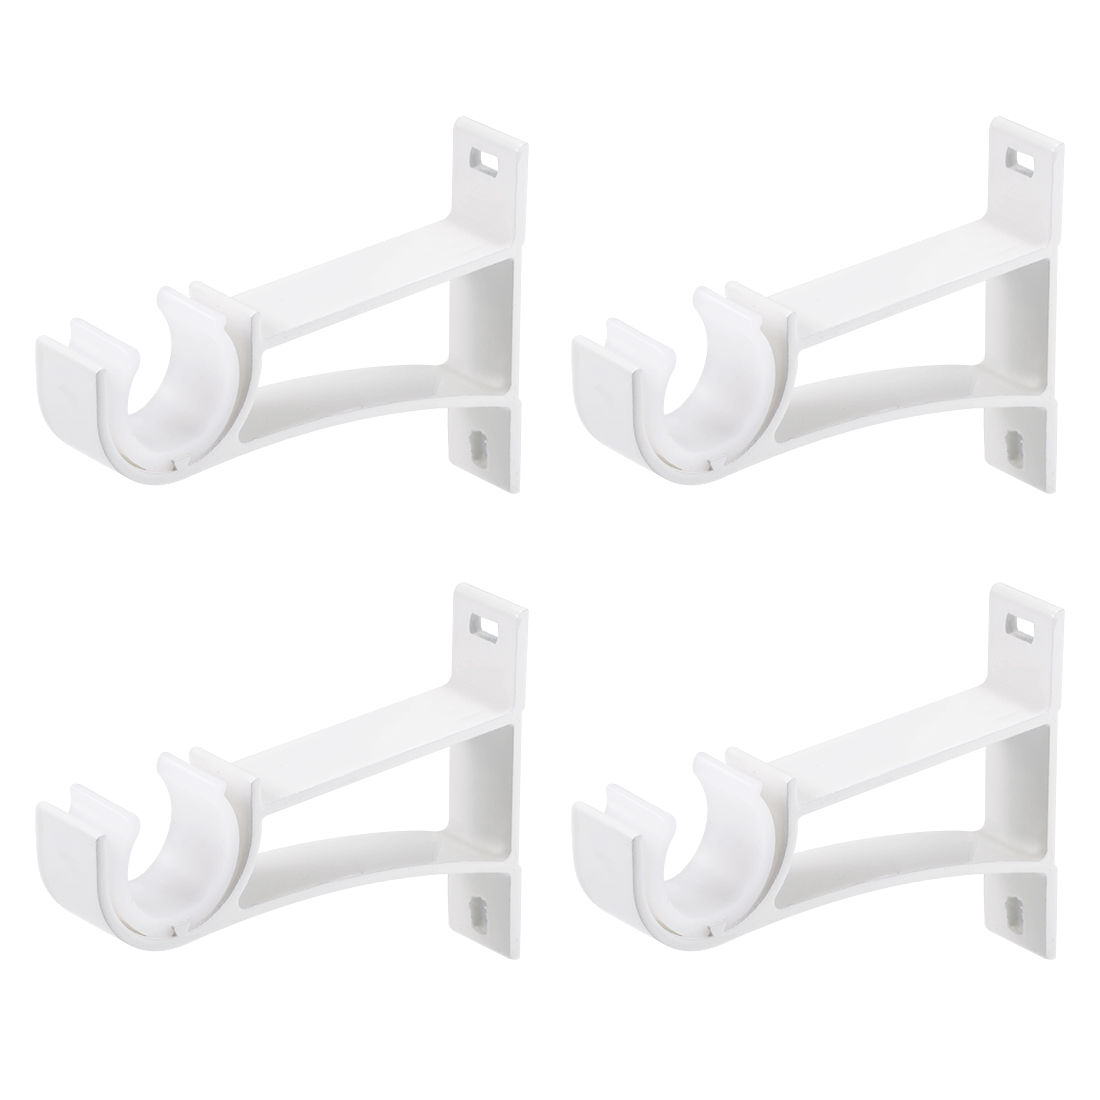 Curtain Rod Bracket Single Holder for 24mm Rod, 108 x 80 x 19mm Milky White 4Pcs